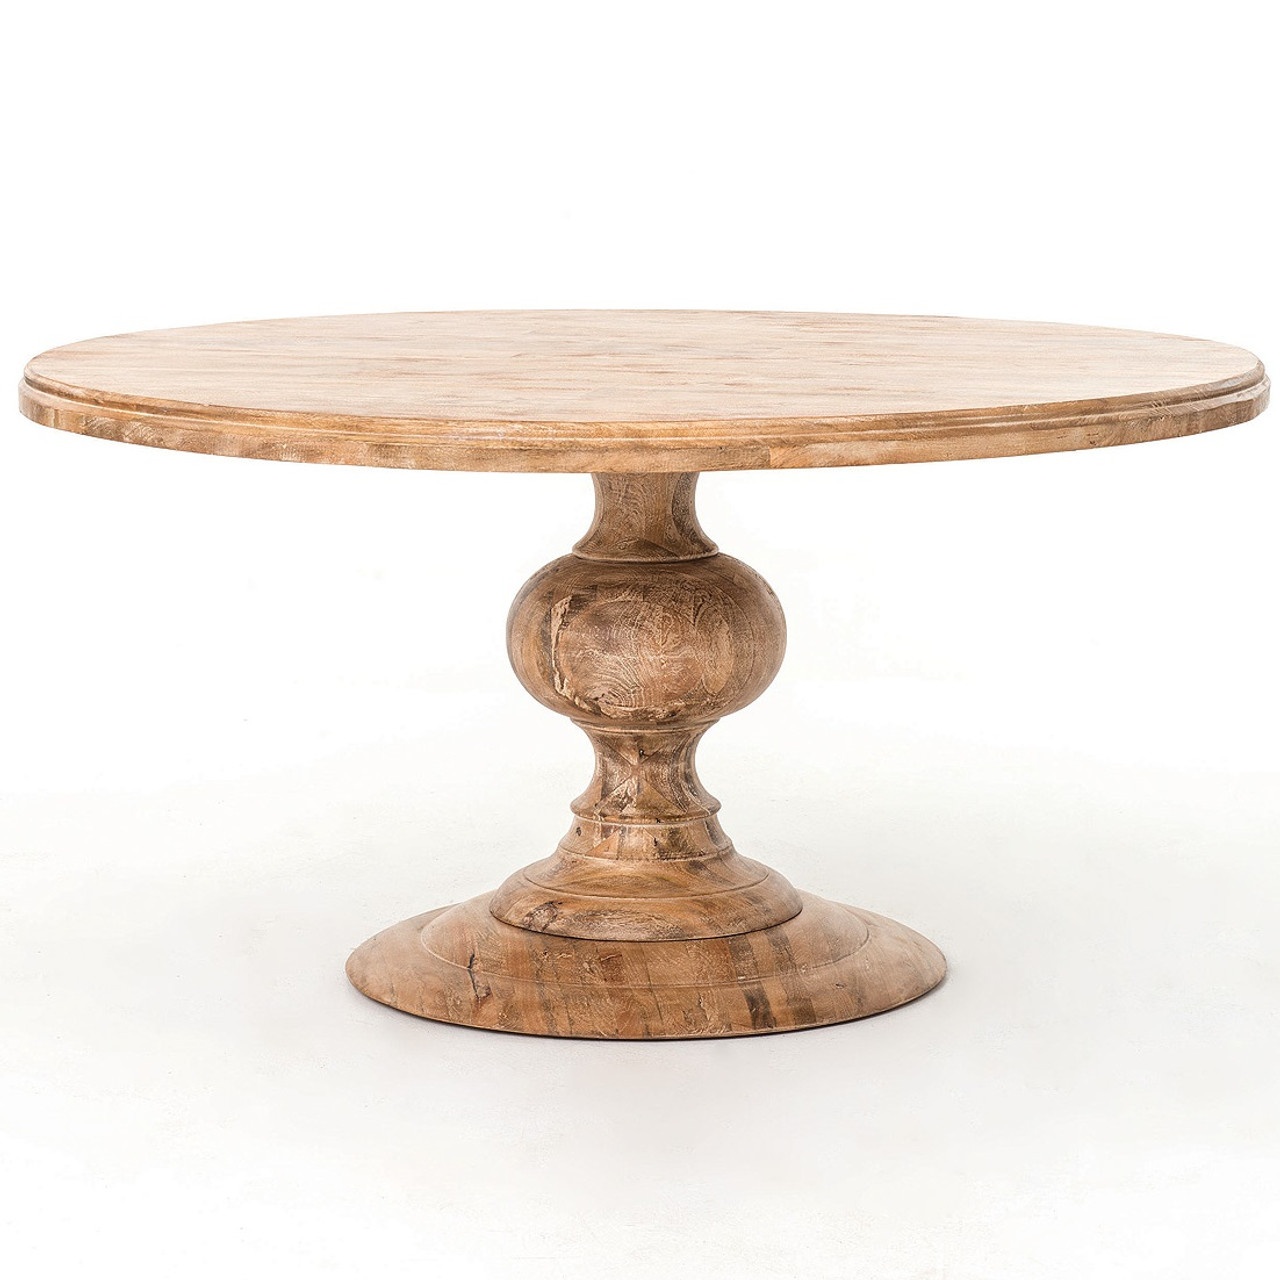 60 Quot Round Pedestal Dining Table In Whitewash Wood Round